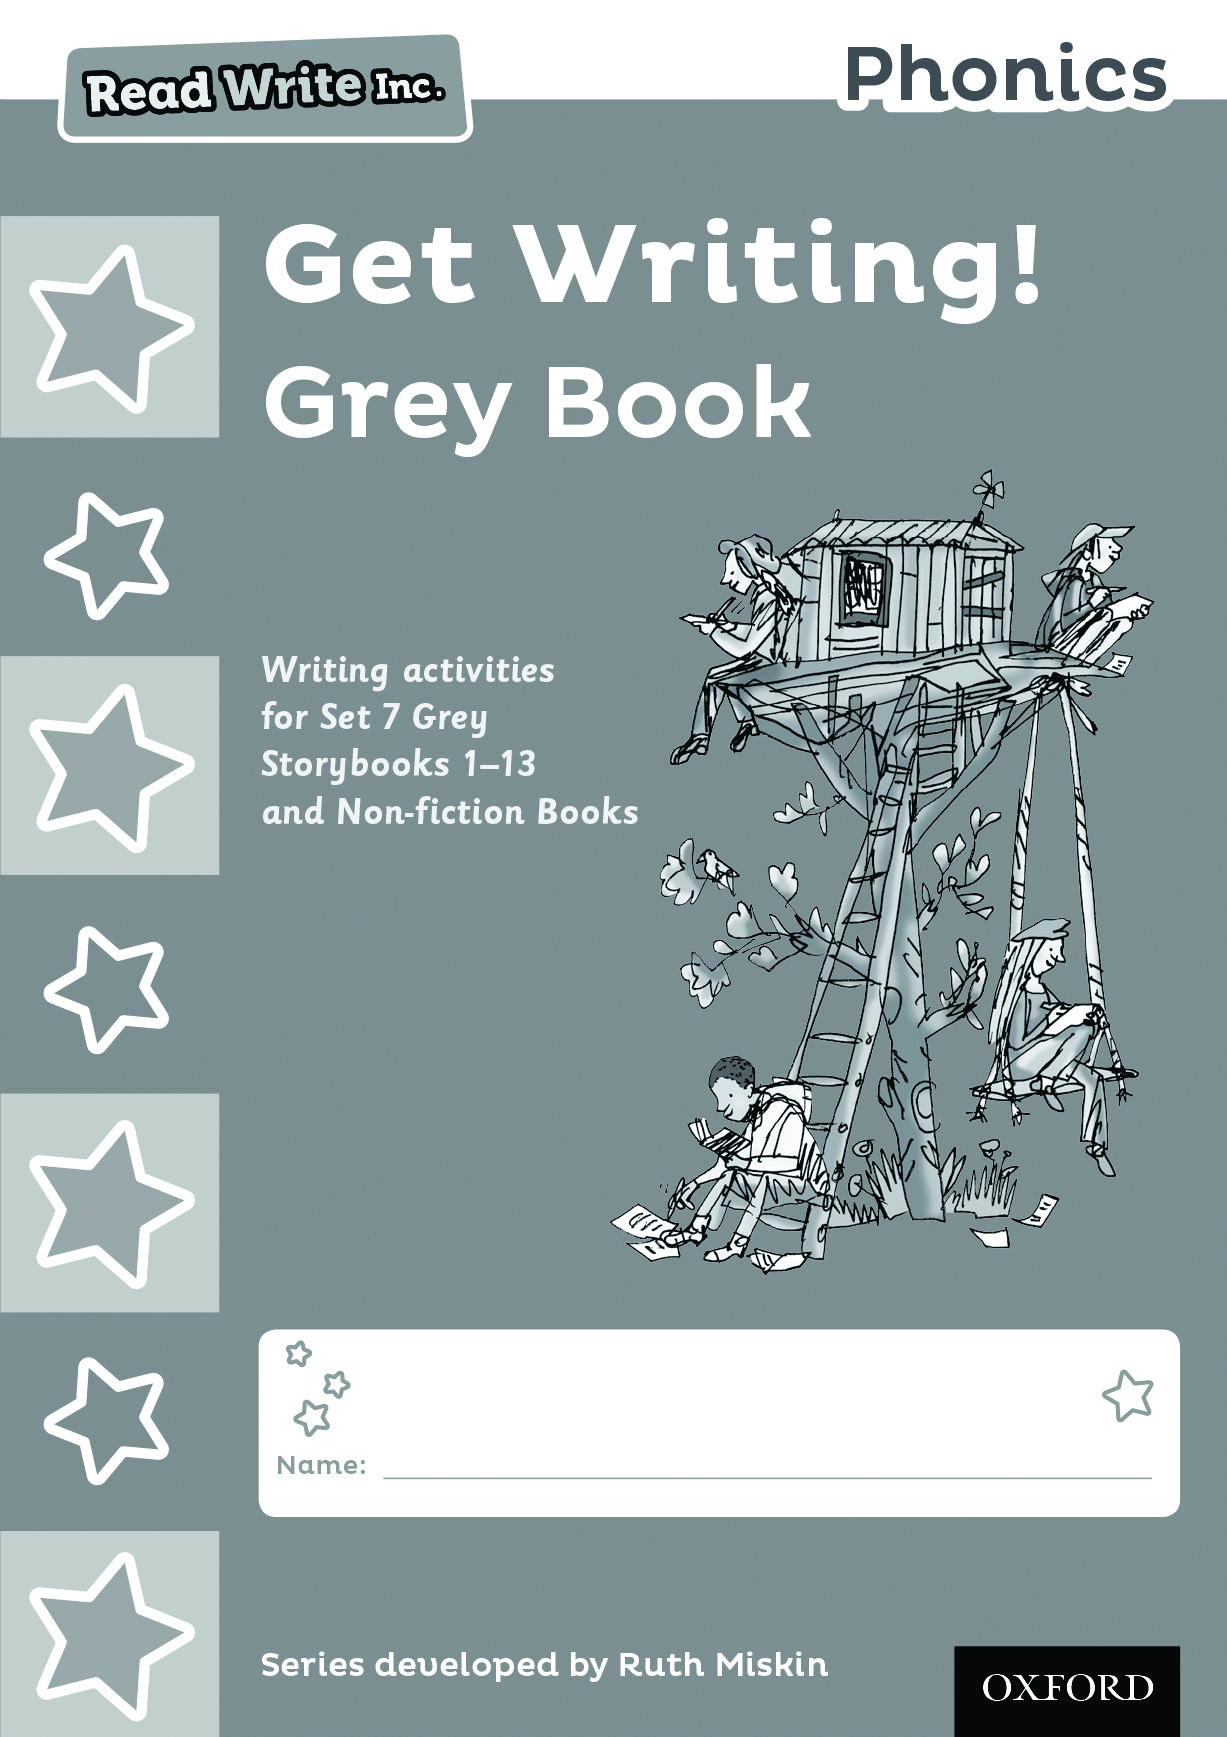 Get Writing! Grey Book Pack of 10